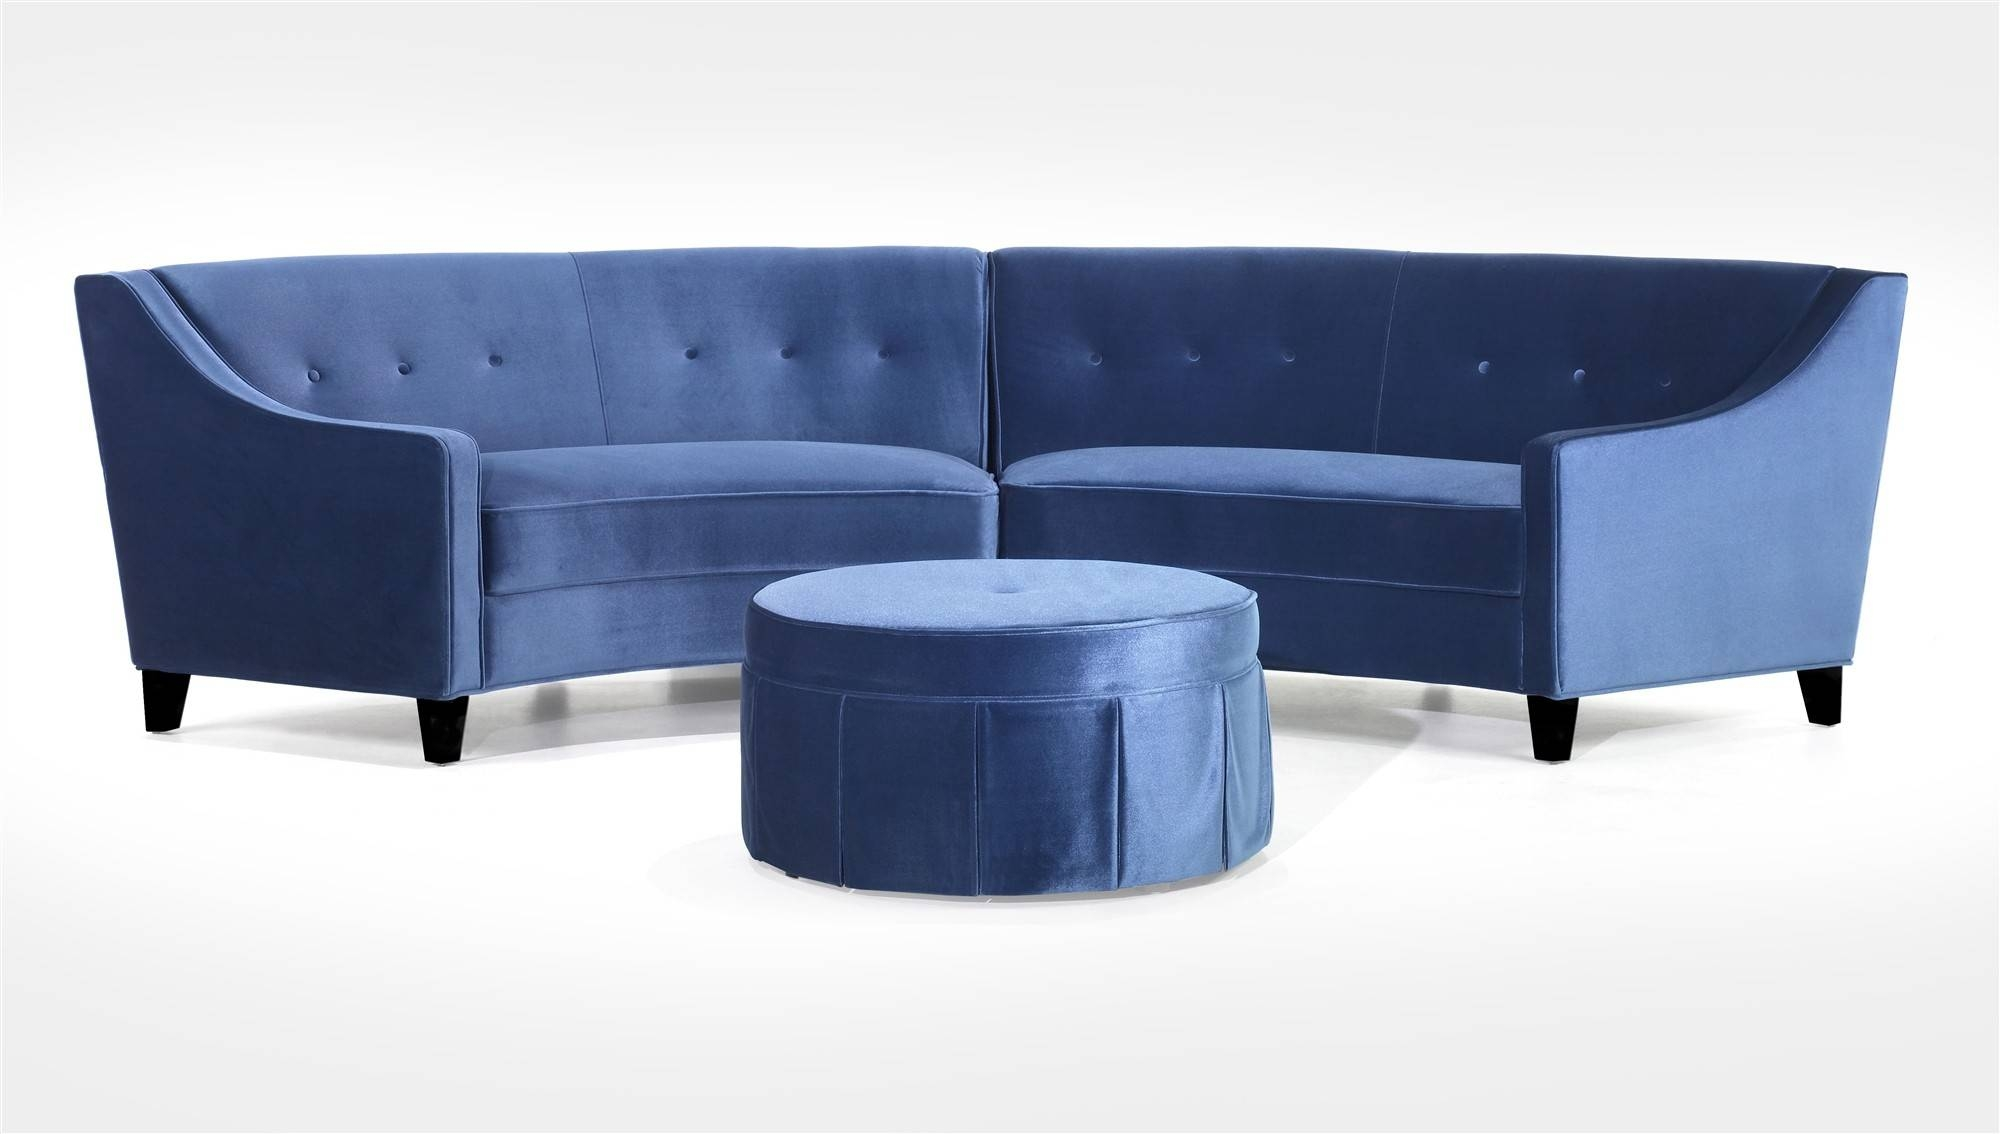 Furniture: Upholstered Fabric Curved Sectional Sofa For Living throughout Circular Sectional Sofa (Image 15 of 30)